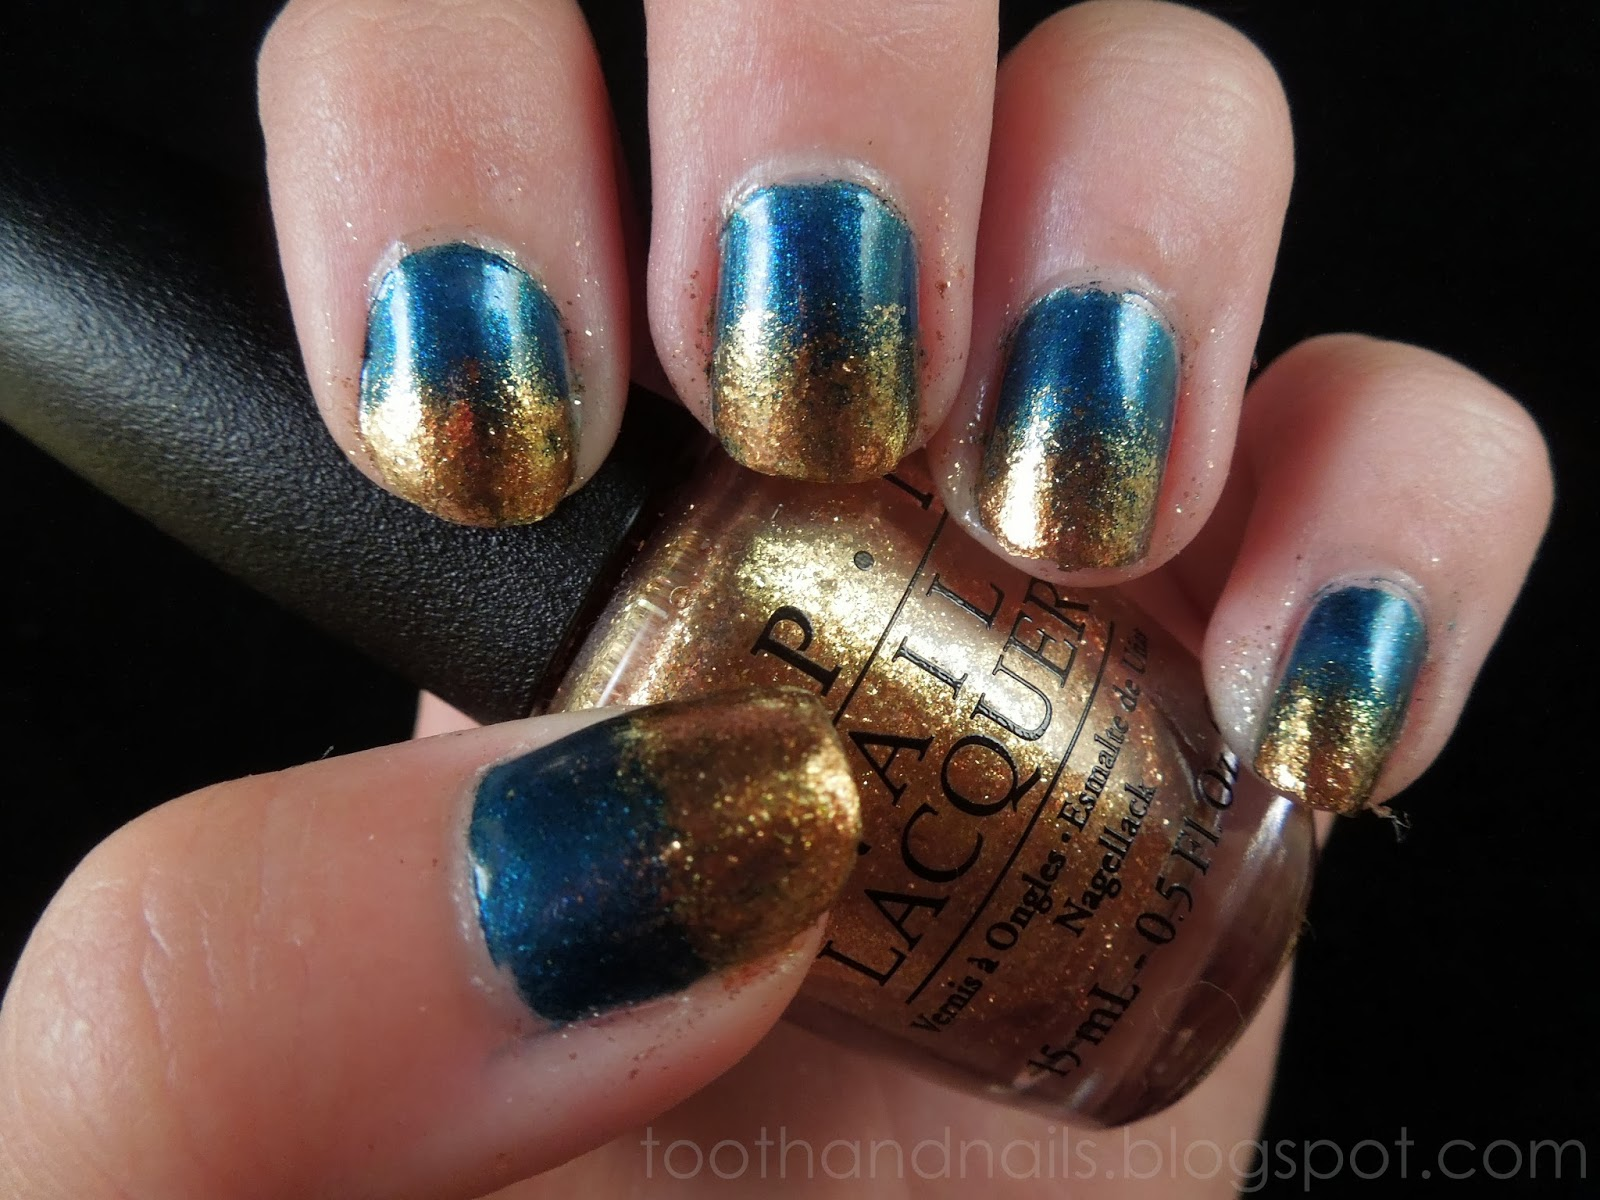 Tooth And Nails Blue Gold Gradient